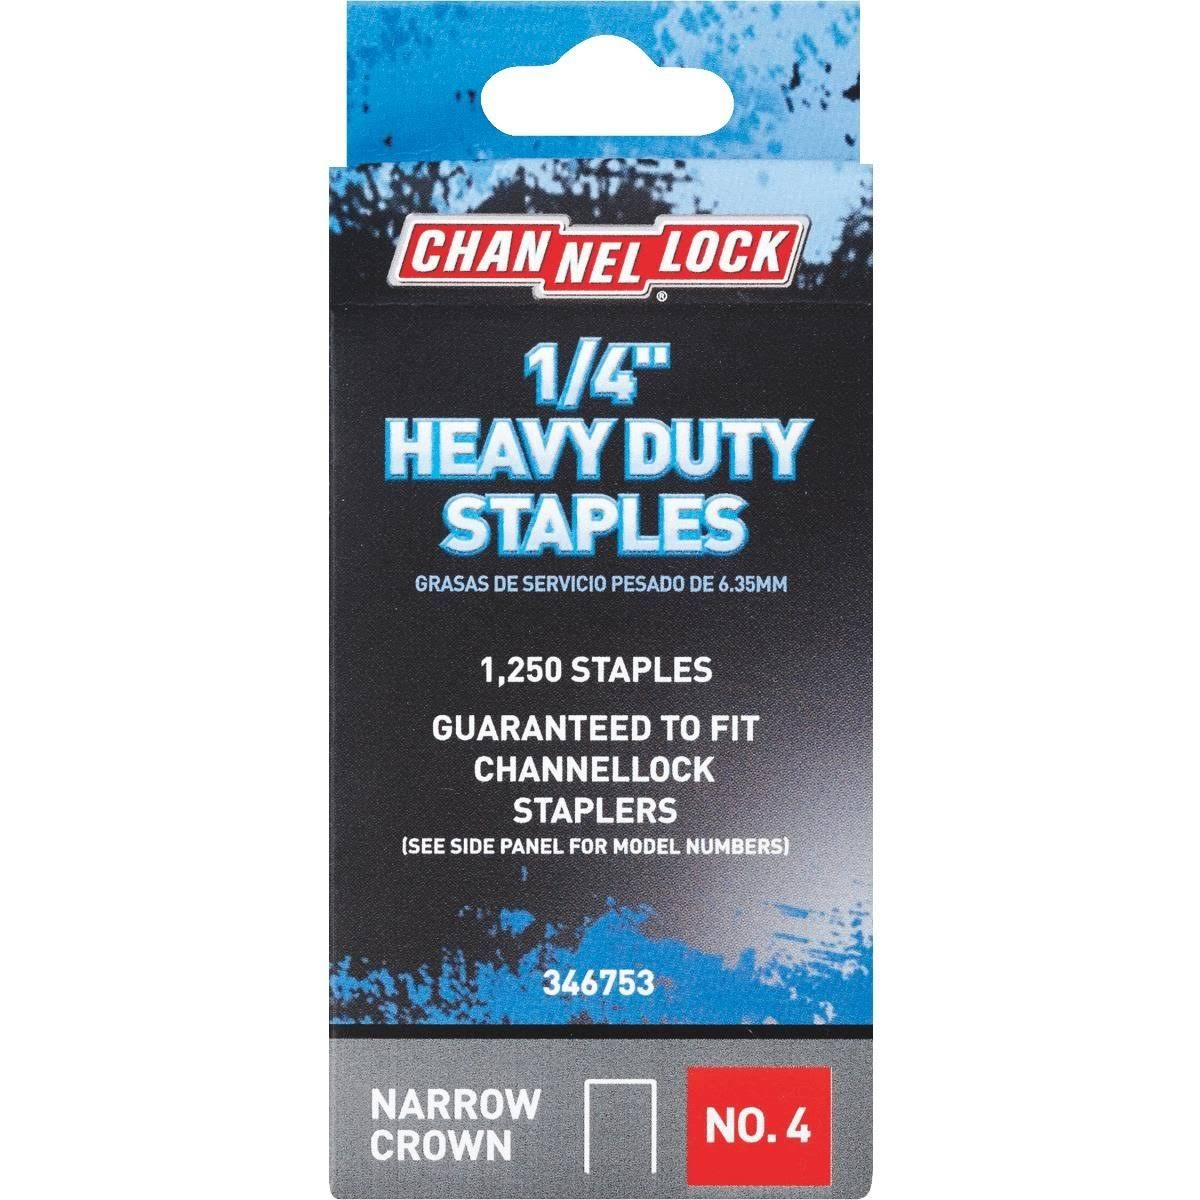 Channellock No. 4 Heavy-Duty Narrow Crown Staple (Pack of 5) 346753